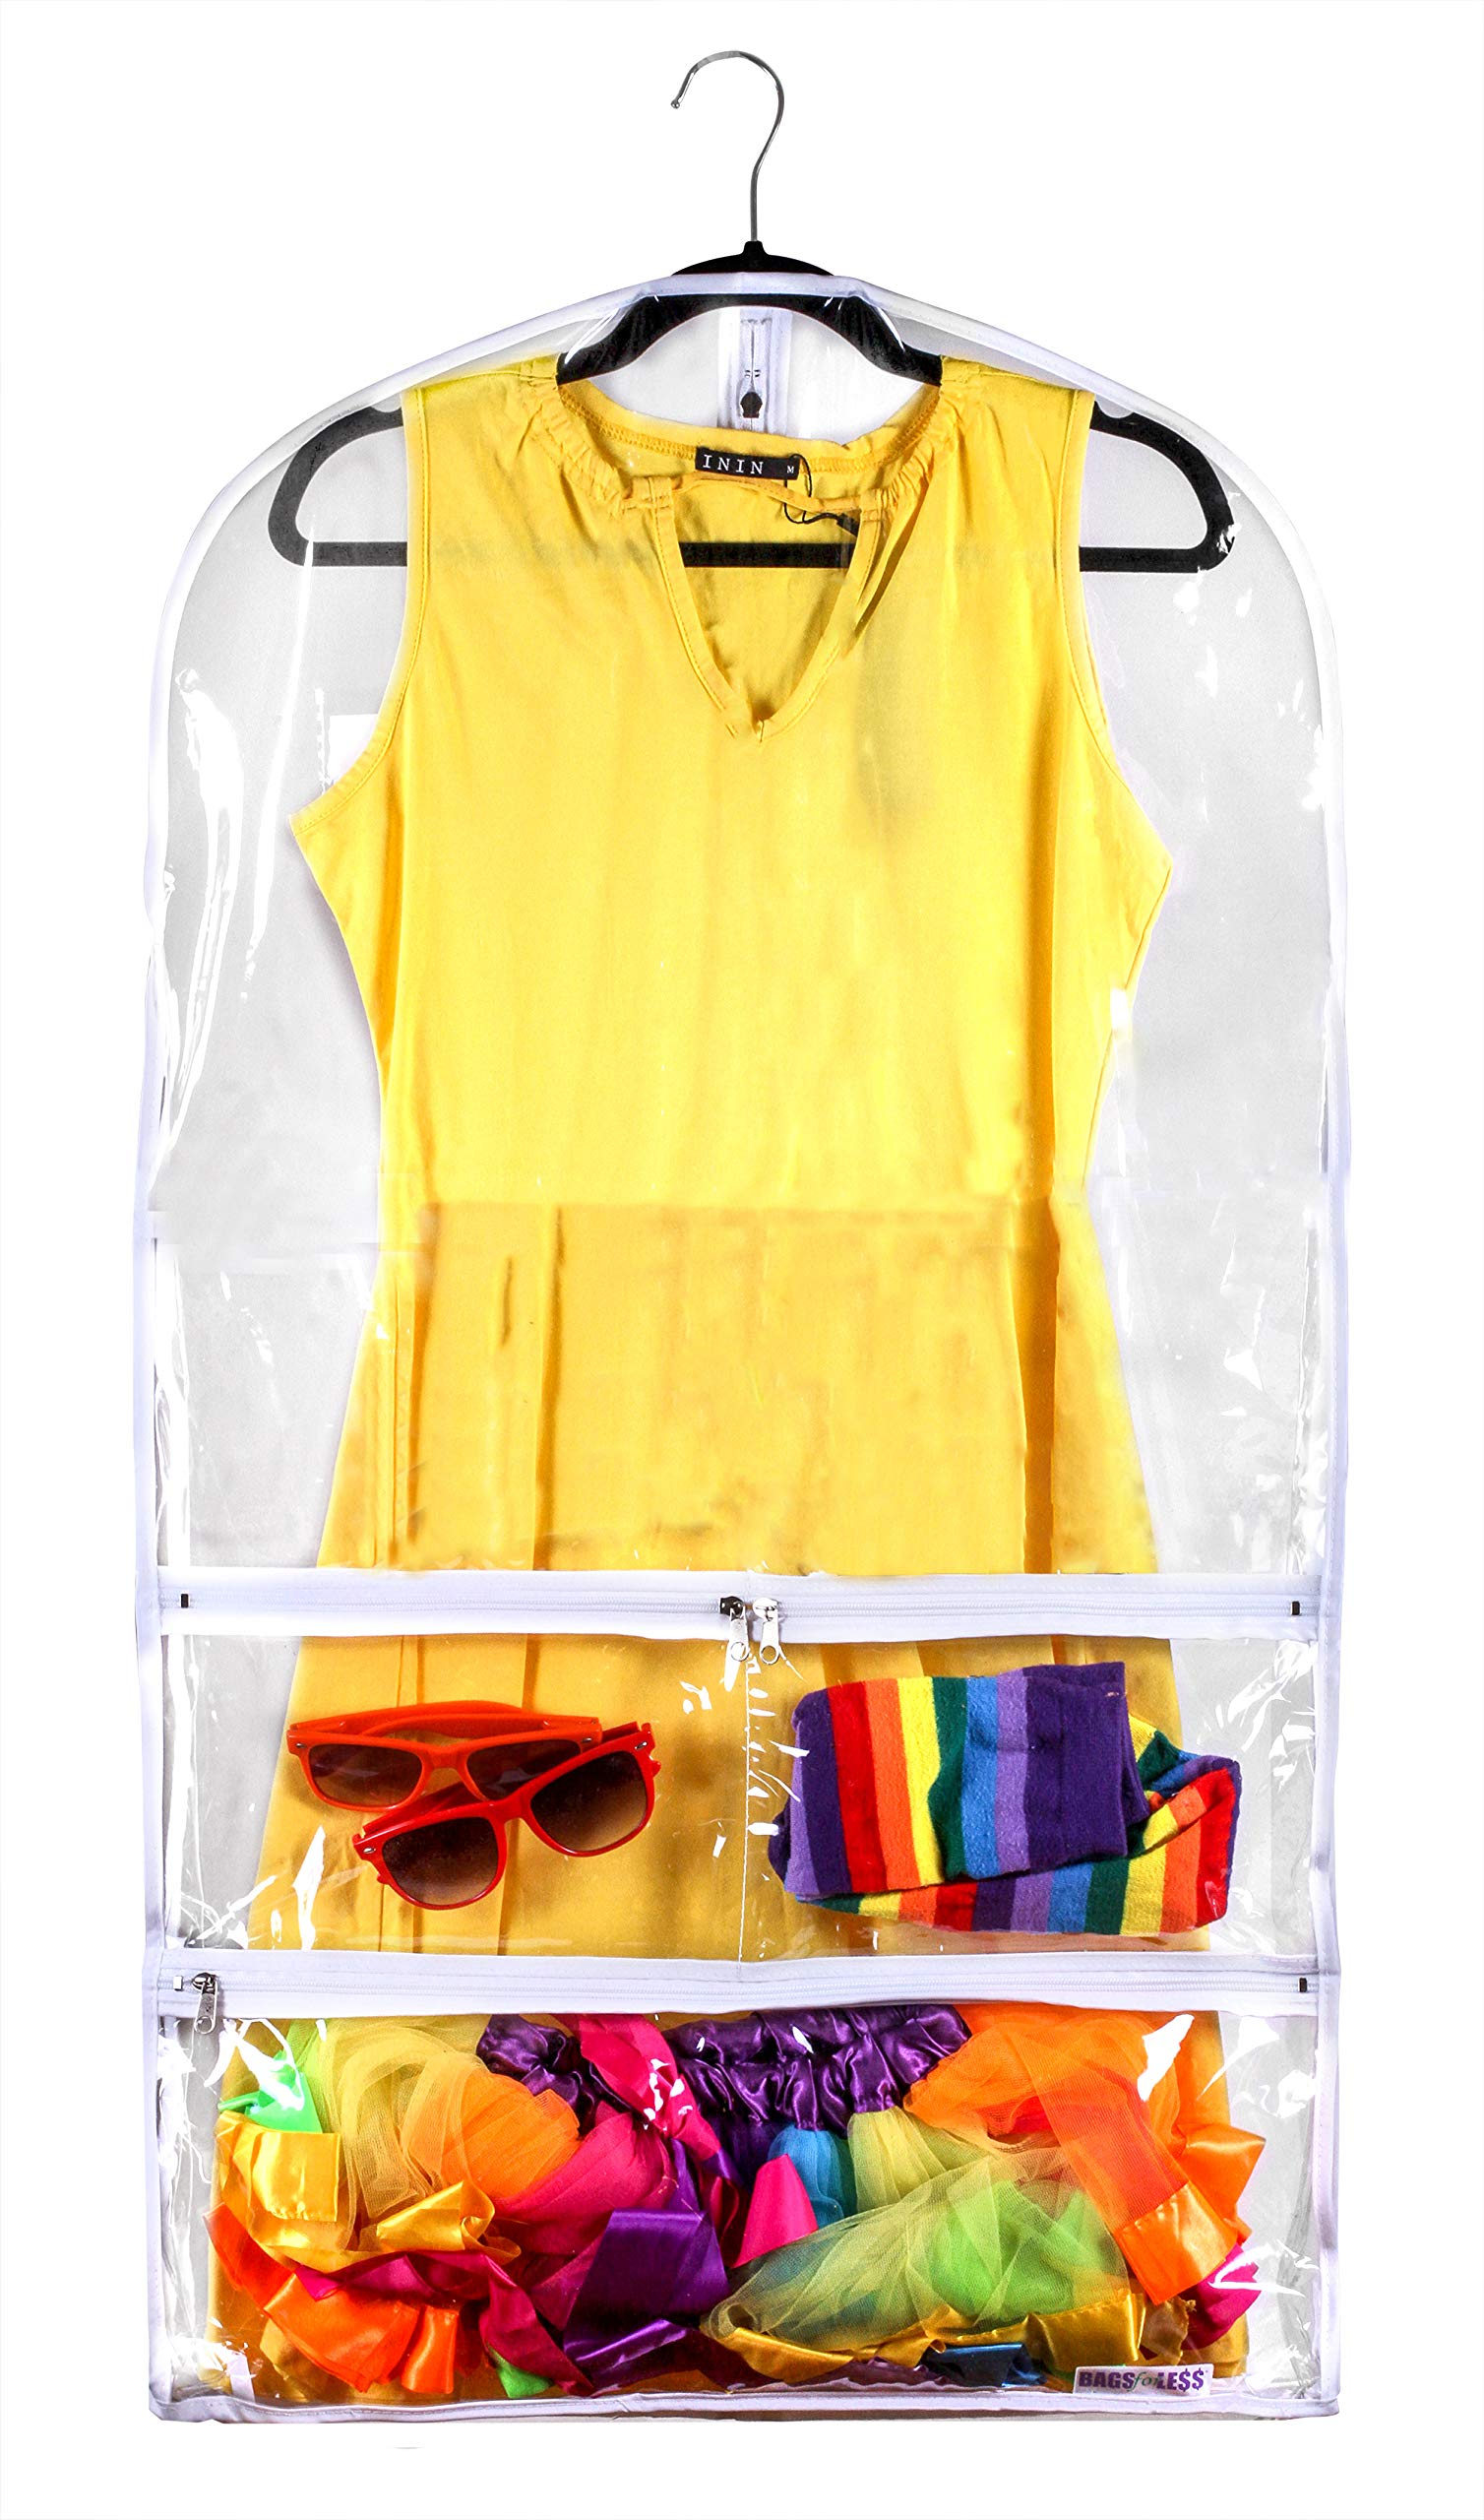 Clear Suit Garment Bag 20 inch x 38 inch Dance, Dress, and Costumes Hanging Travel Storage for Clothes, Shoes, and Accessories Water-Resistant Organizer (1)